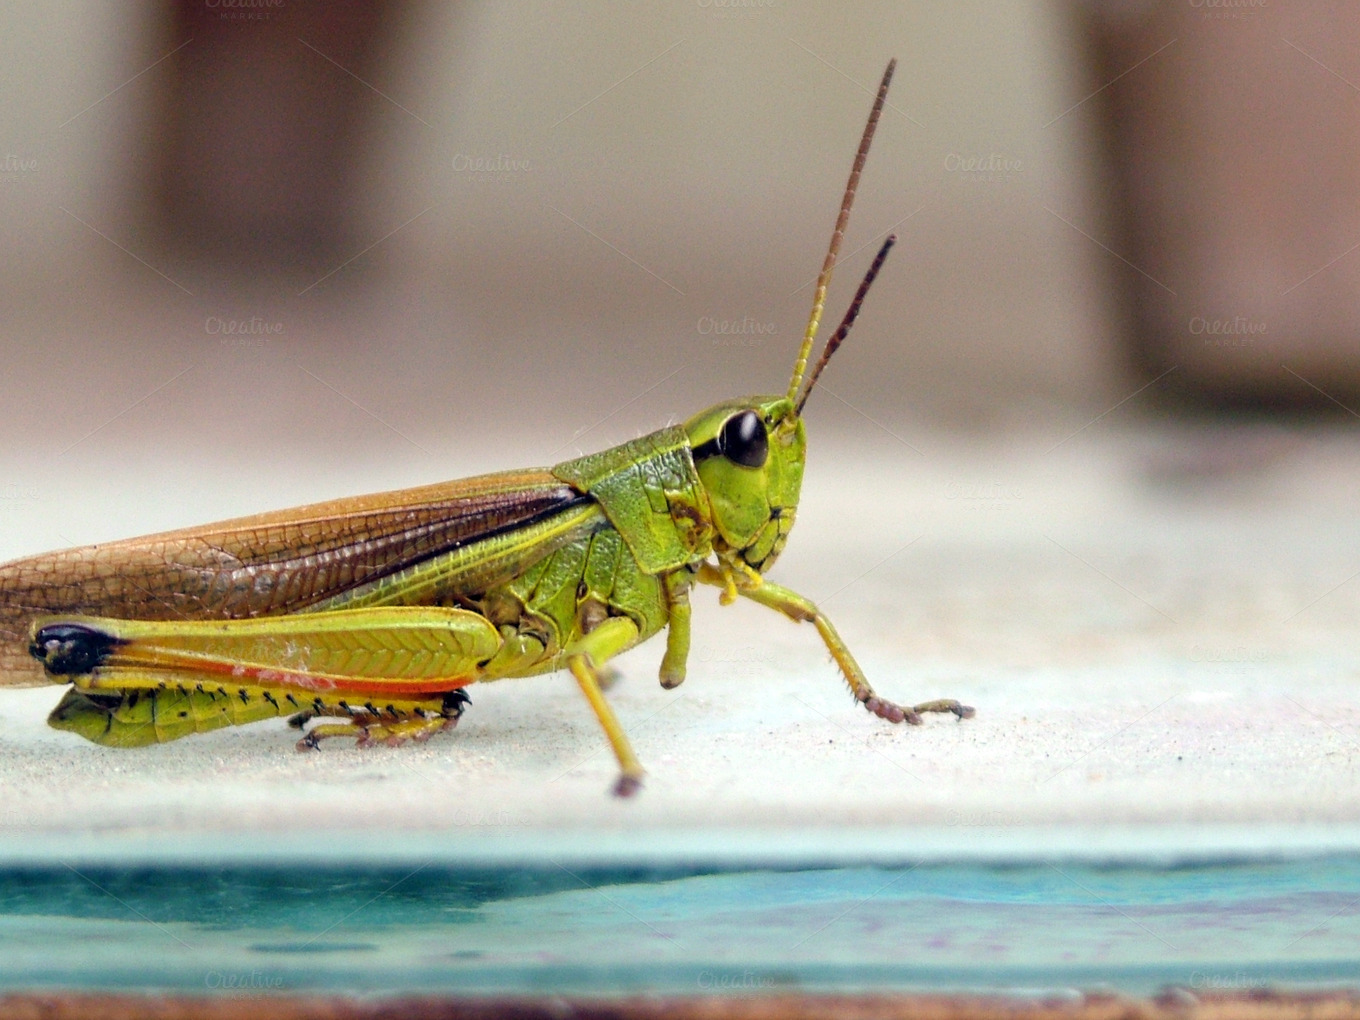 Cricket Close Up ~ Animal Photos on Creative Market